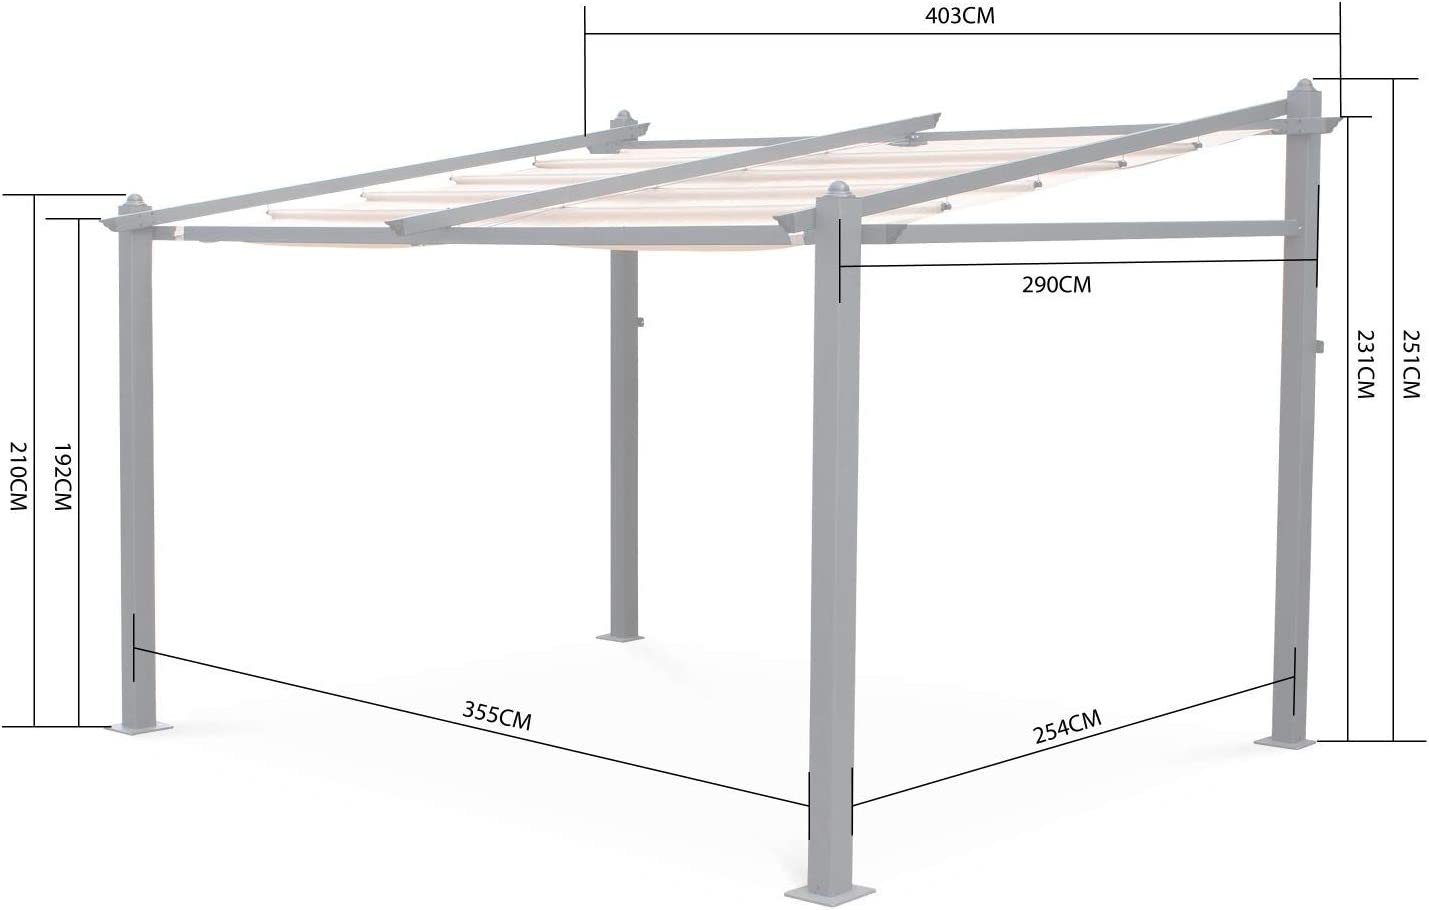 Alices Garden - Pergola de Pared, Aluminio, Ecru, 3x4m, Murum: Amazon.es: Jardín